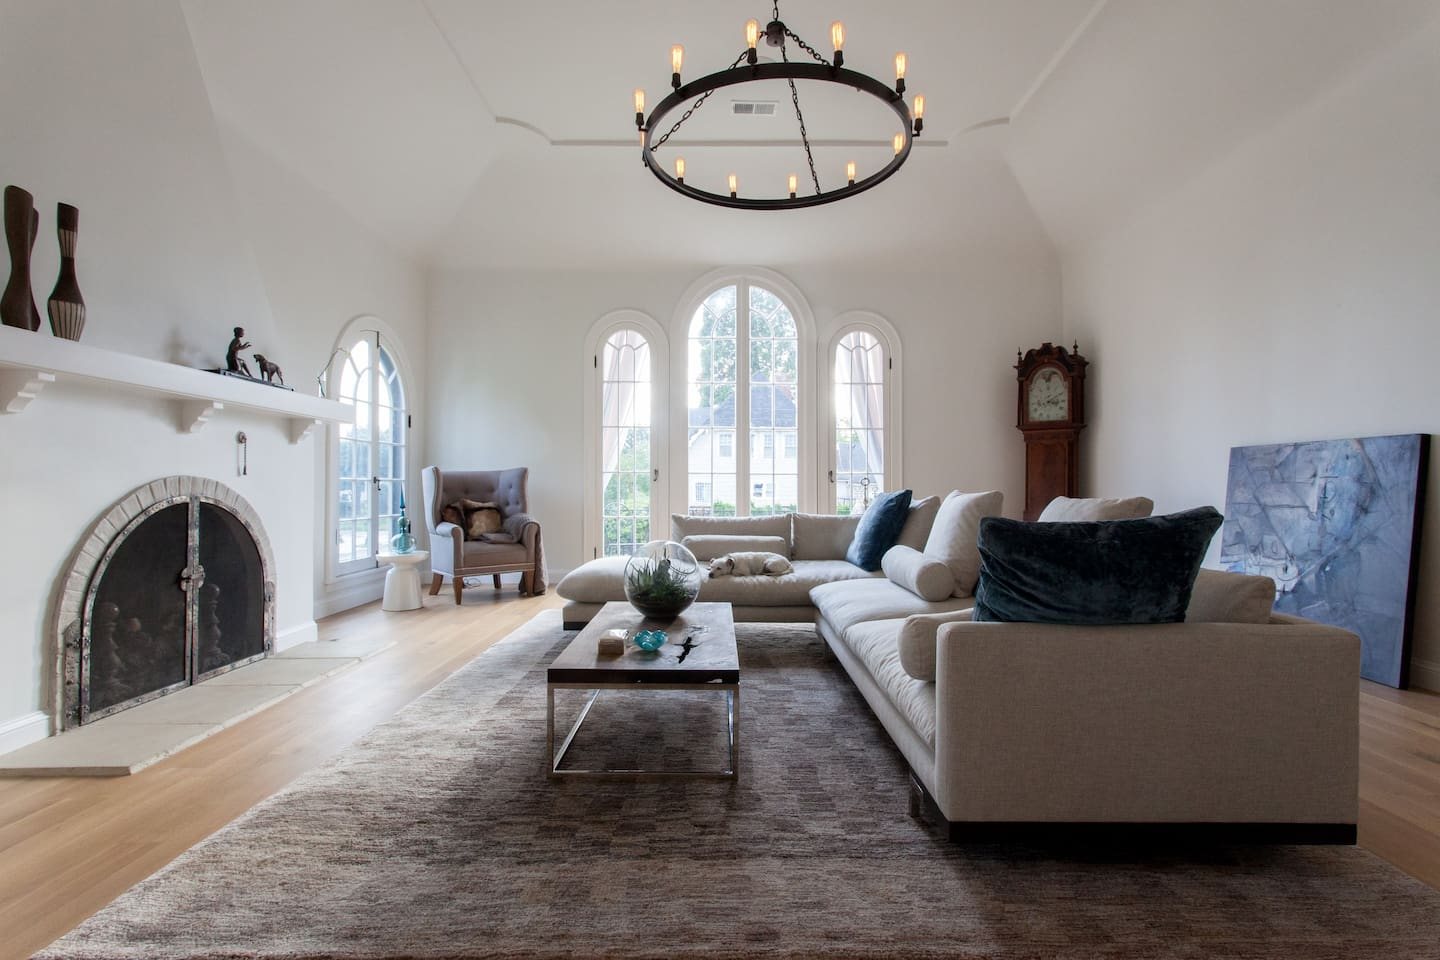 The amazing moorish living room of Casa Alameda with twelve foot ceilings and arched French doors to a balcony